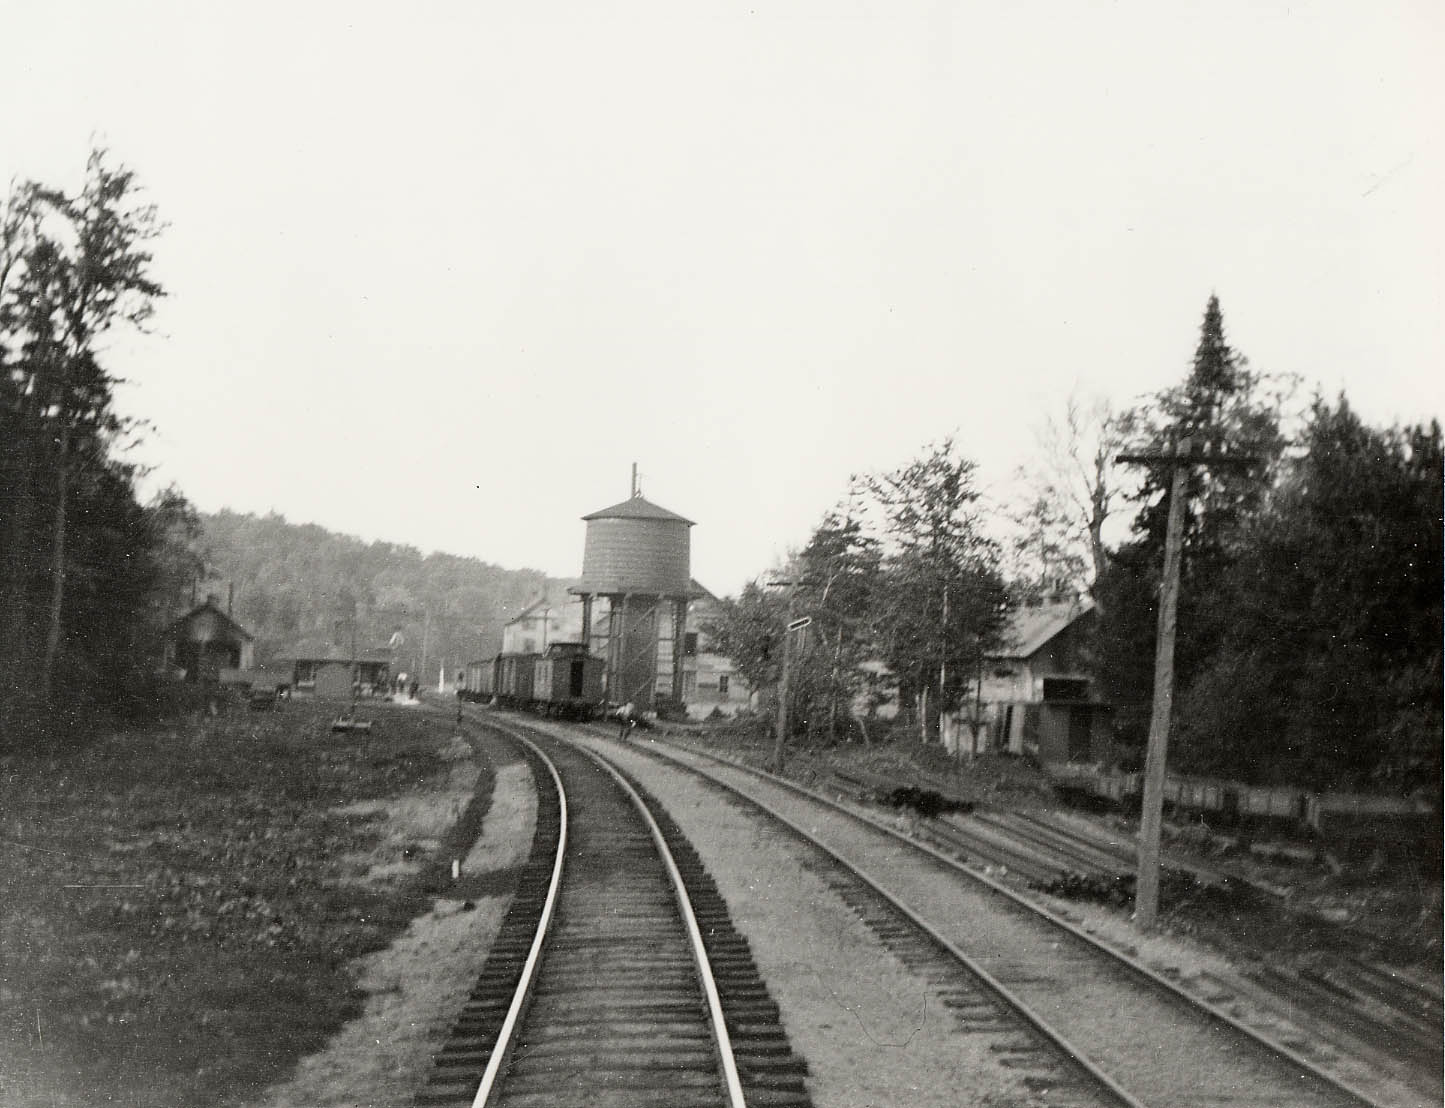 Horseshoe Lake Railroad Station (c. 1900). The image looks north towards the Horseshoe Lake Train Station (left). The building furthest to the left is the two-stall engine house for the Maple Valley RR owned by A.A. Low. On the right are the mill buildings for the Wake Robin RR also owned by Low. (Photo from the Adirondack Museum Collection)